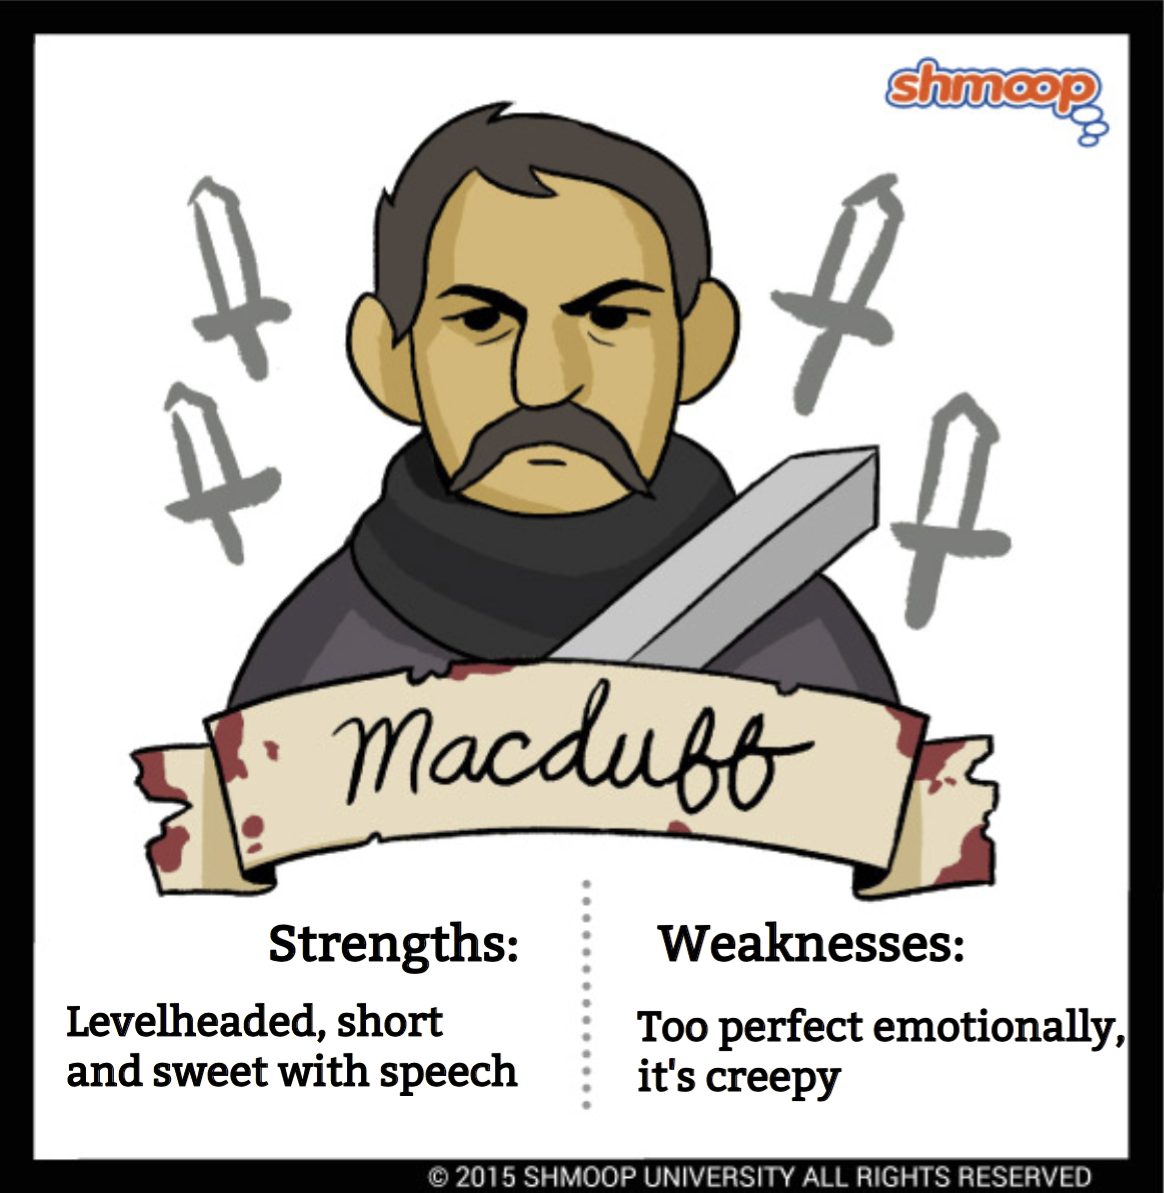 an analysis of false appearances in macbeth a play by william shakespeare Makes several appearances in the play  macbeth a false sense of  the plays by william shakespeare in hamlet and macbeth the supernatural.